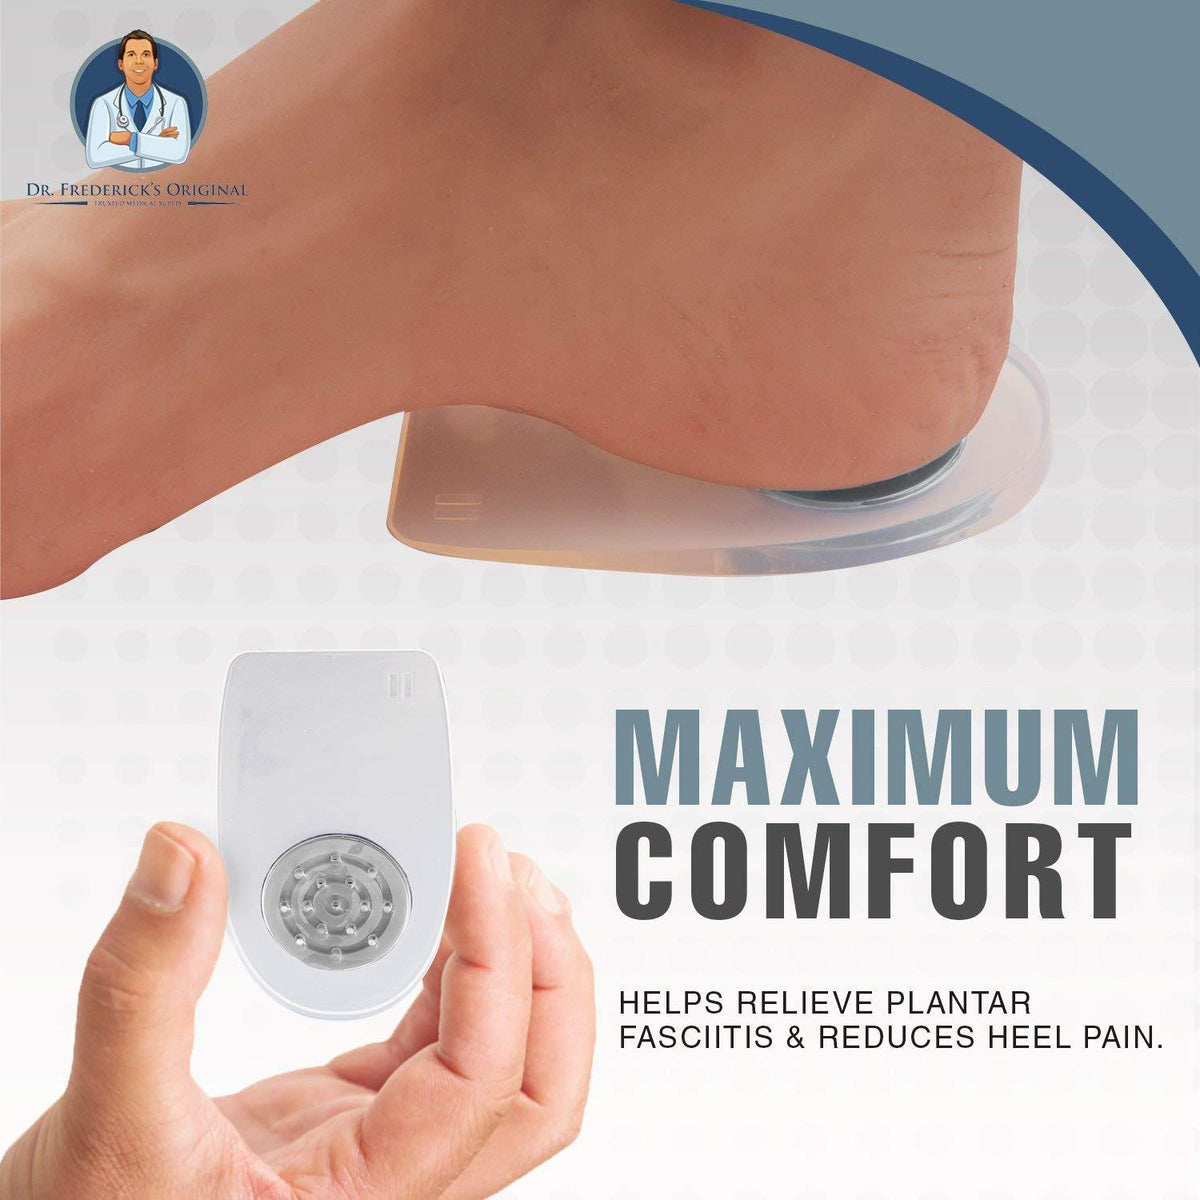 Dr. Frederick's Original Airstep Heel Cushion Inserts -- 2 Pieces - for Heel Pain, Plantar Fasciitis, and Heel Spurs Foot Pain Dr. Frederick's Original